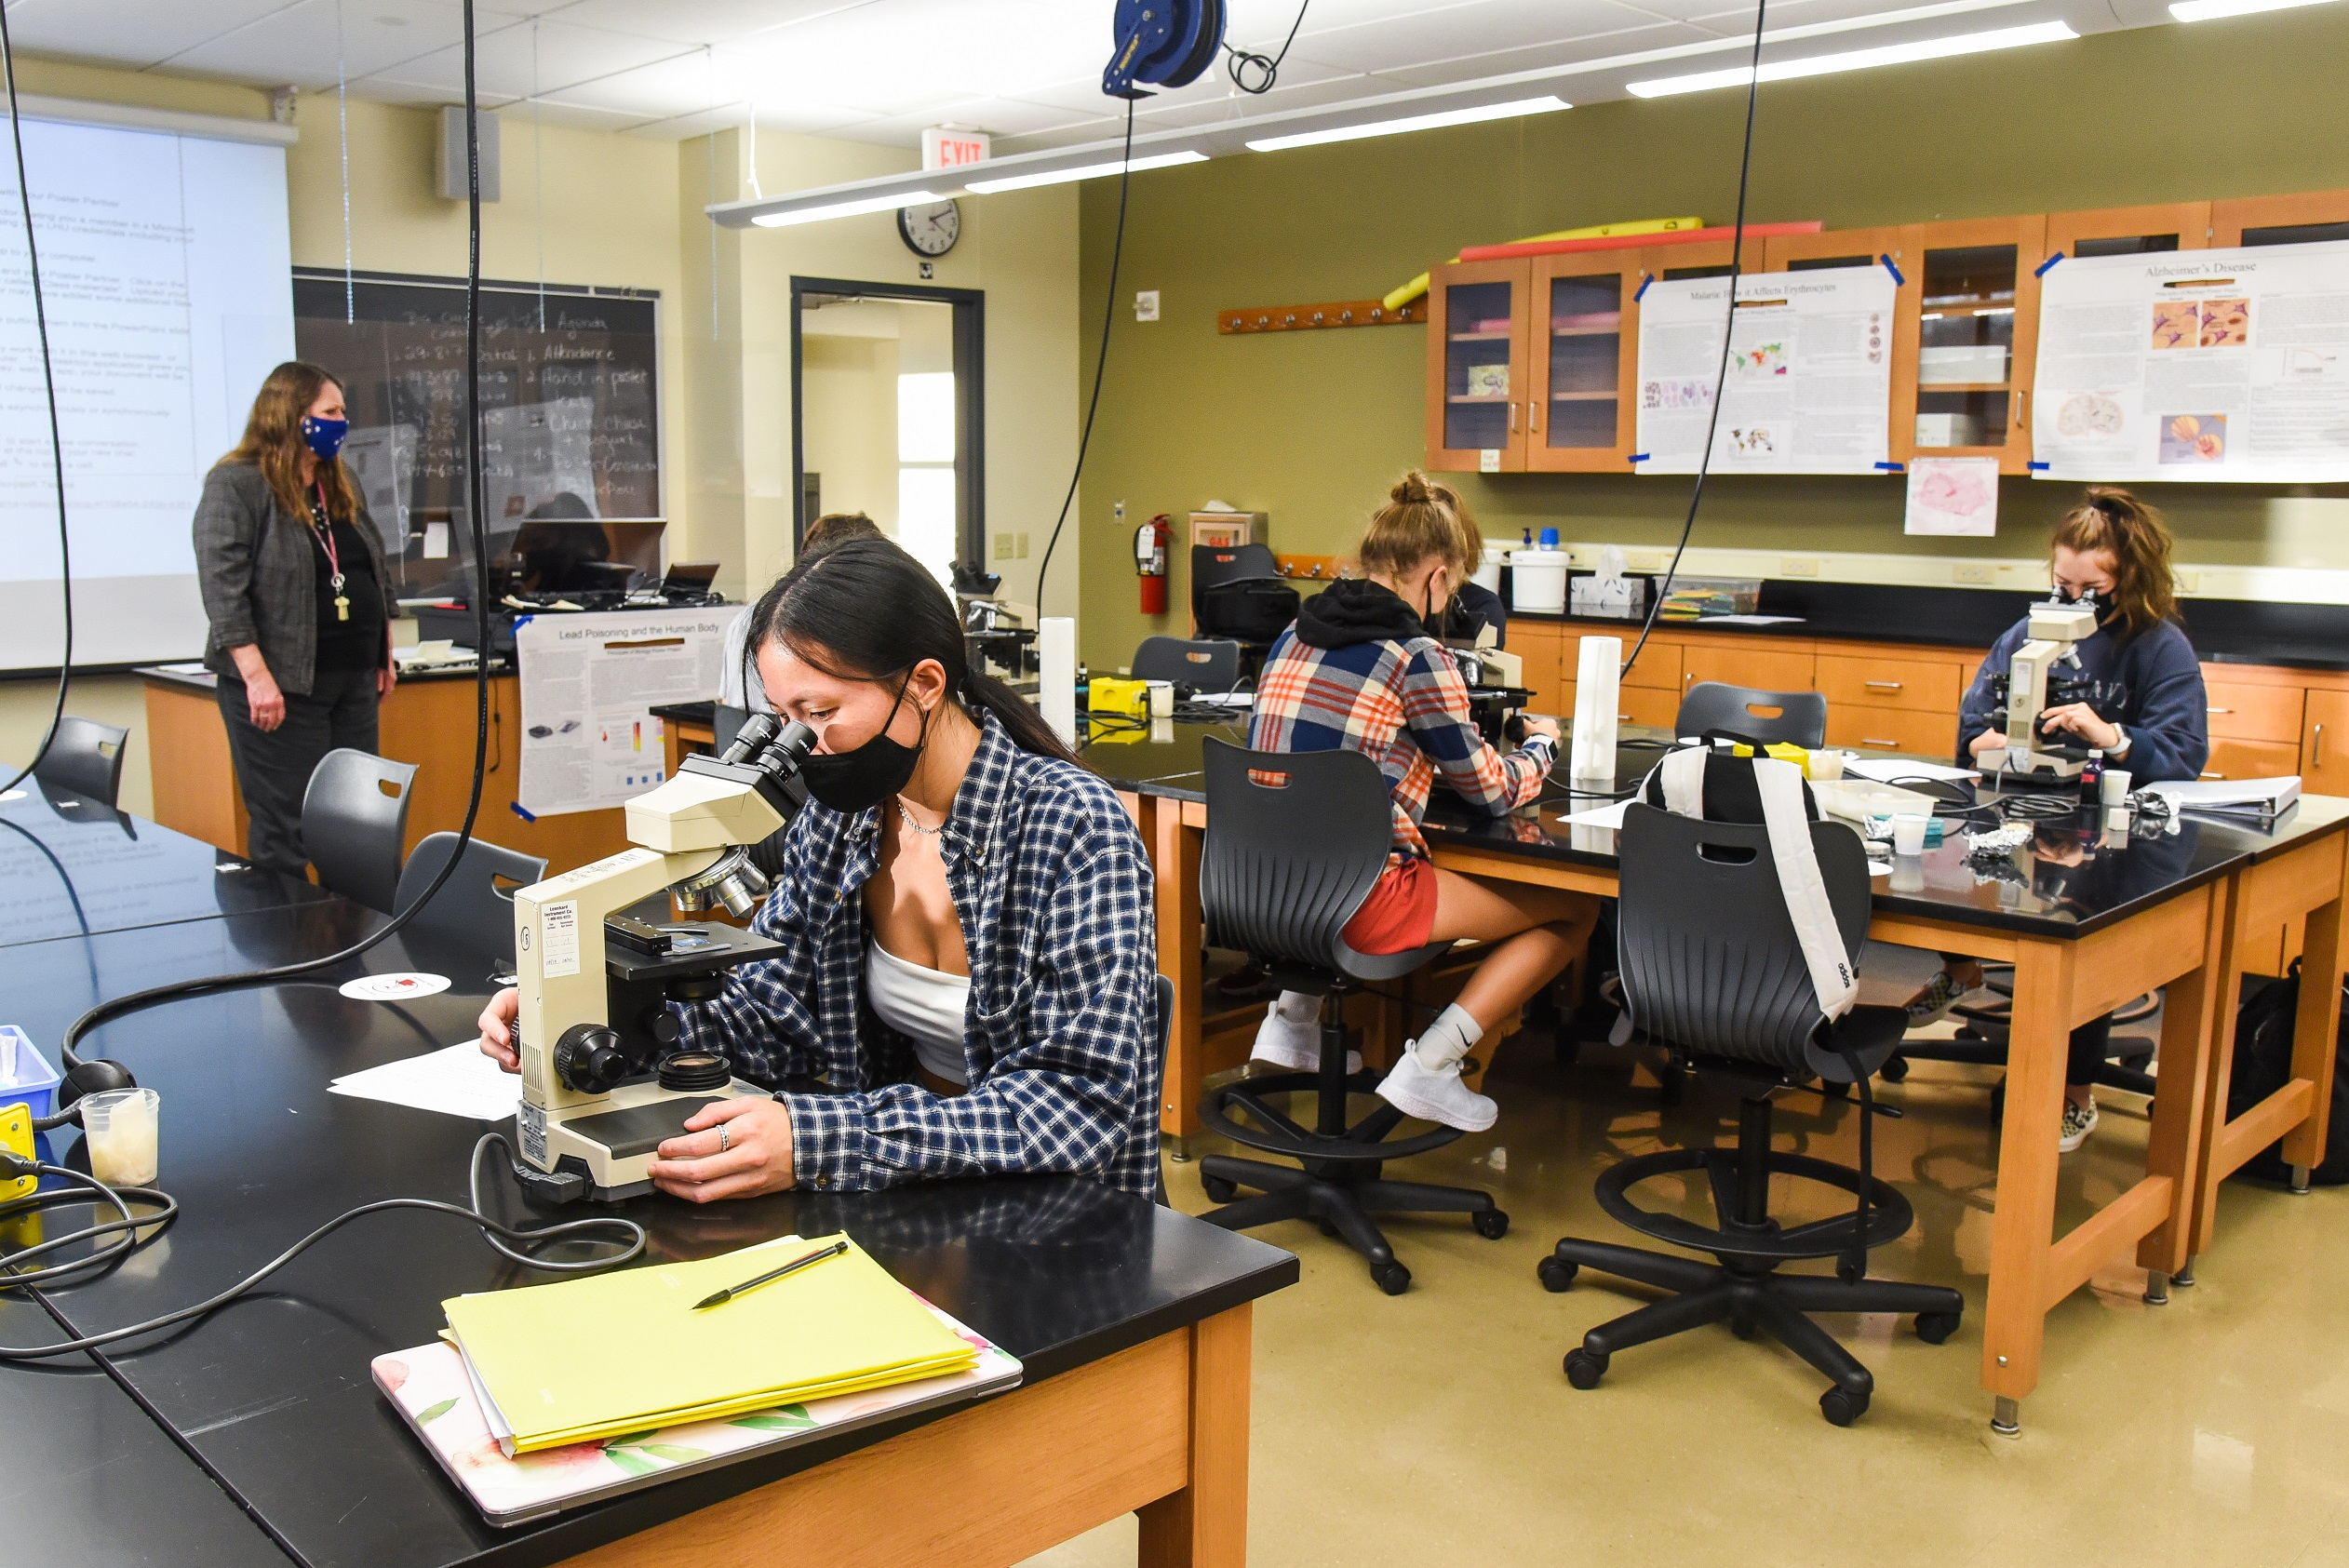 LHU students are shown during a lab, where social distancing is in place and facial coverings are required.